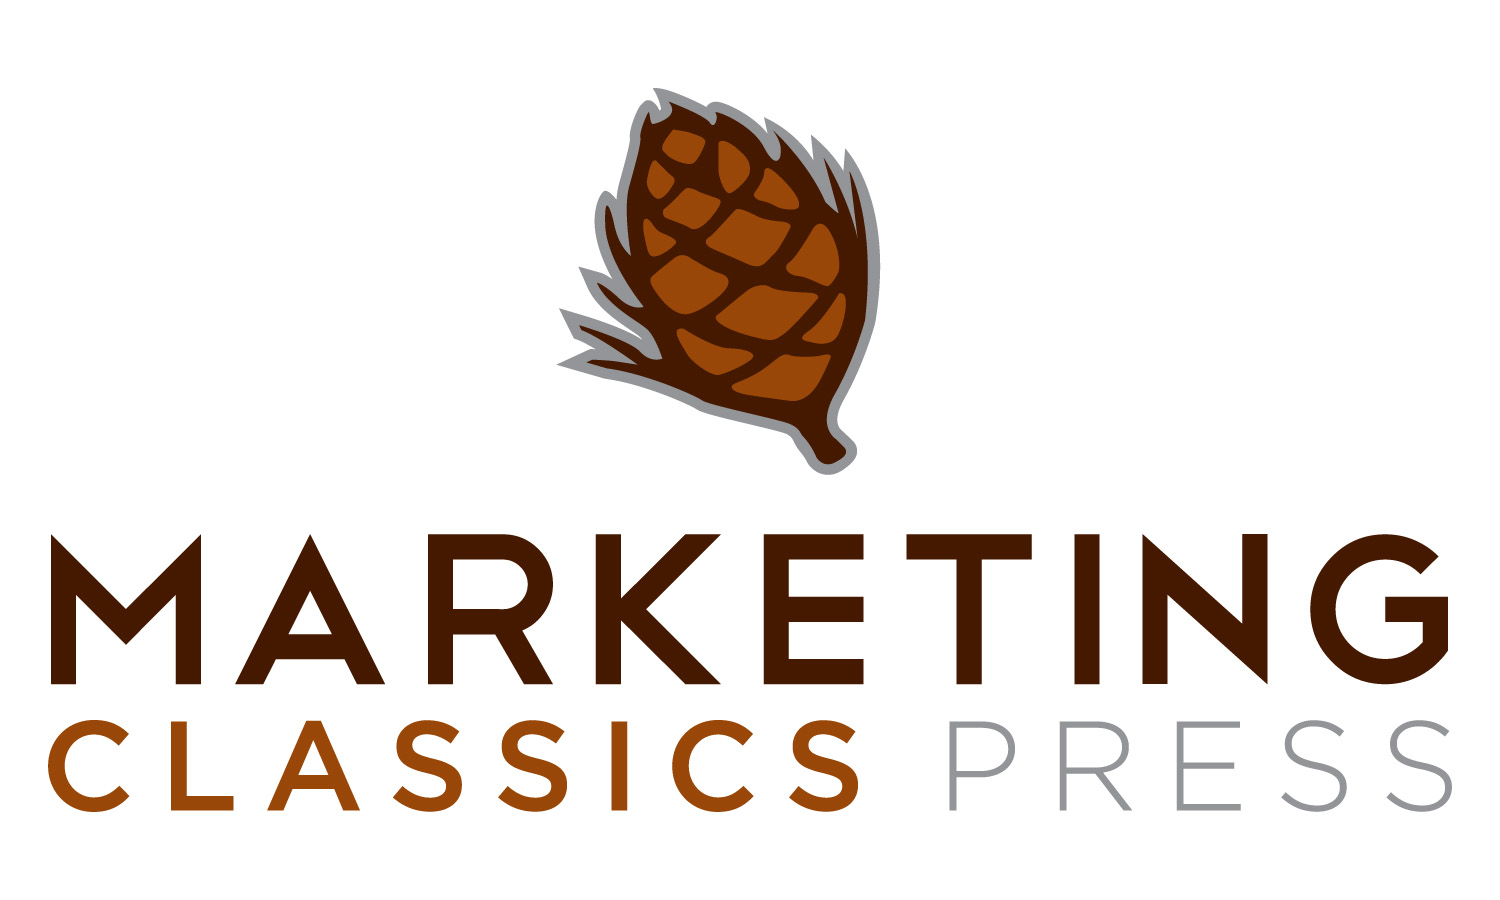 MarketingClassicsPress_logos